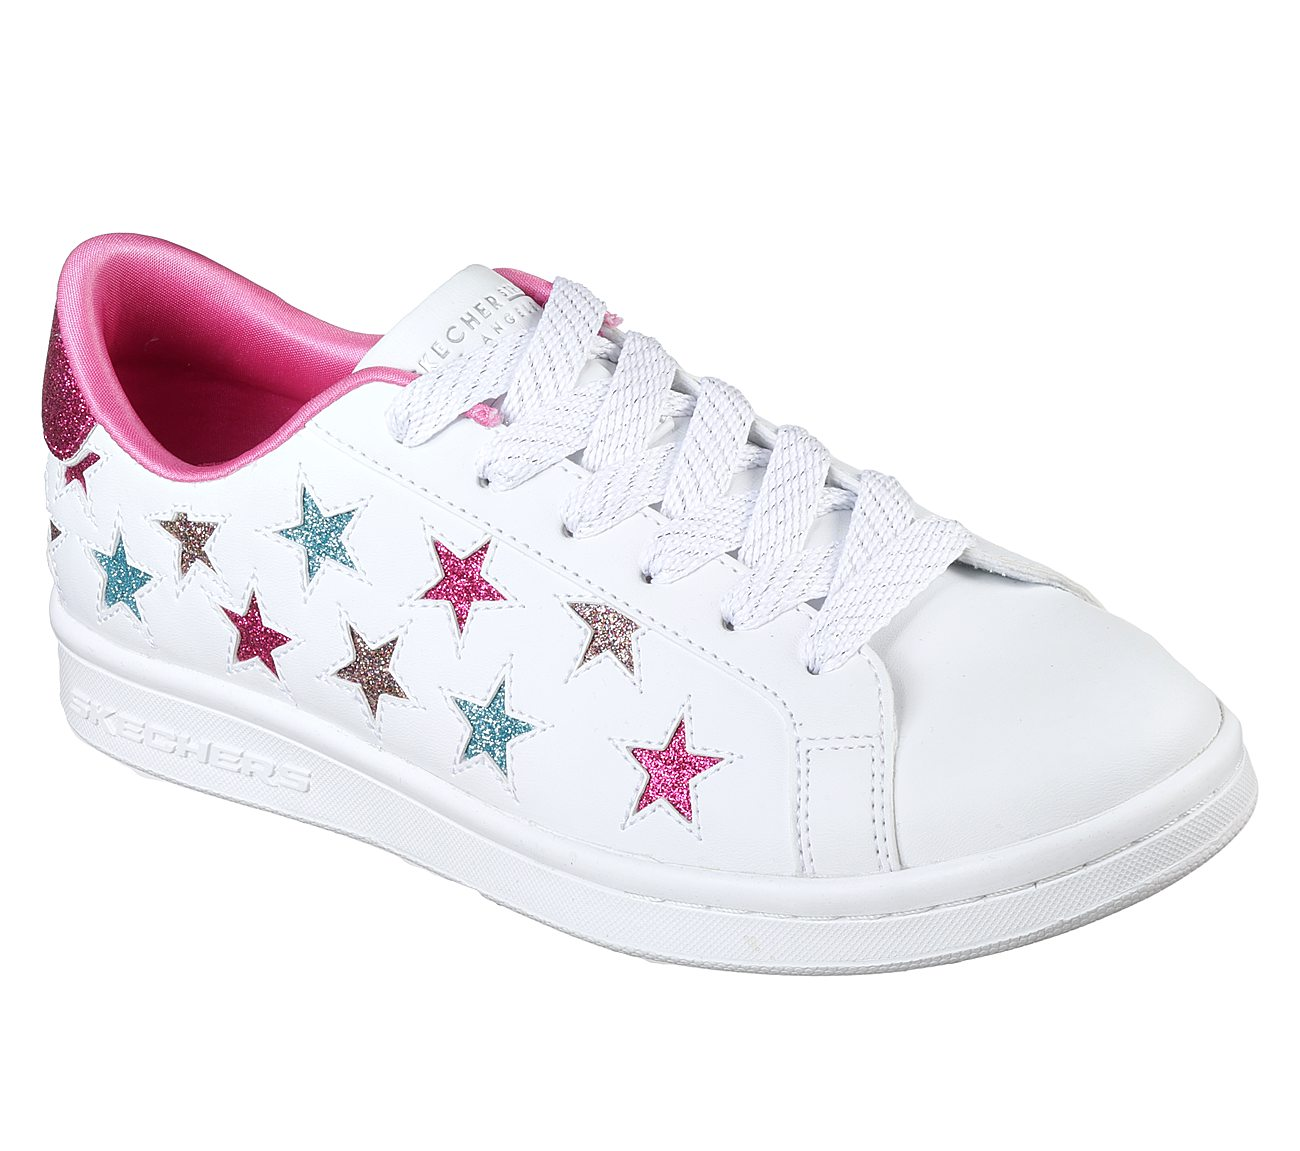 NEW SKECHERS WOMENS OMNE LITTLE STAR SNEAKER